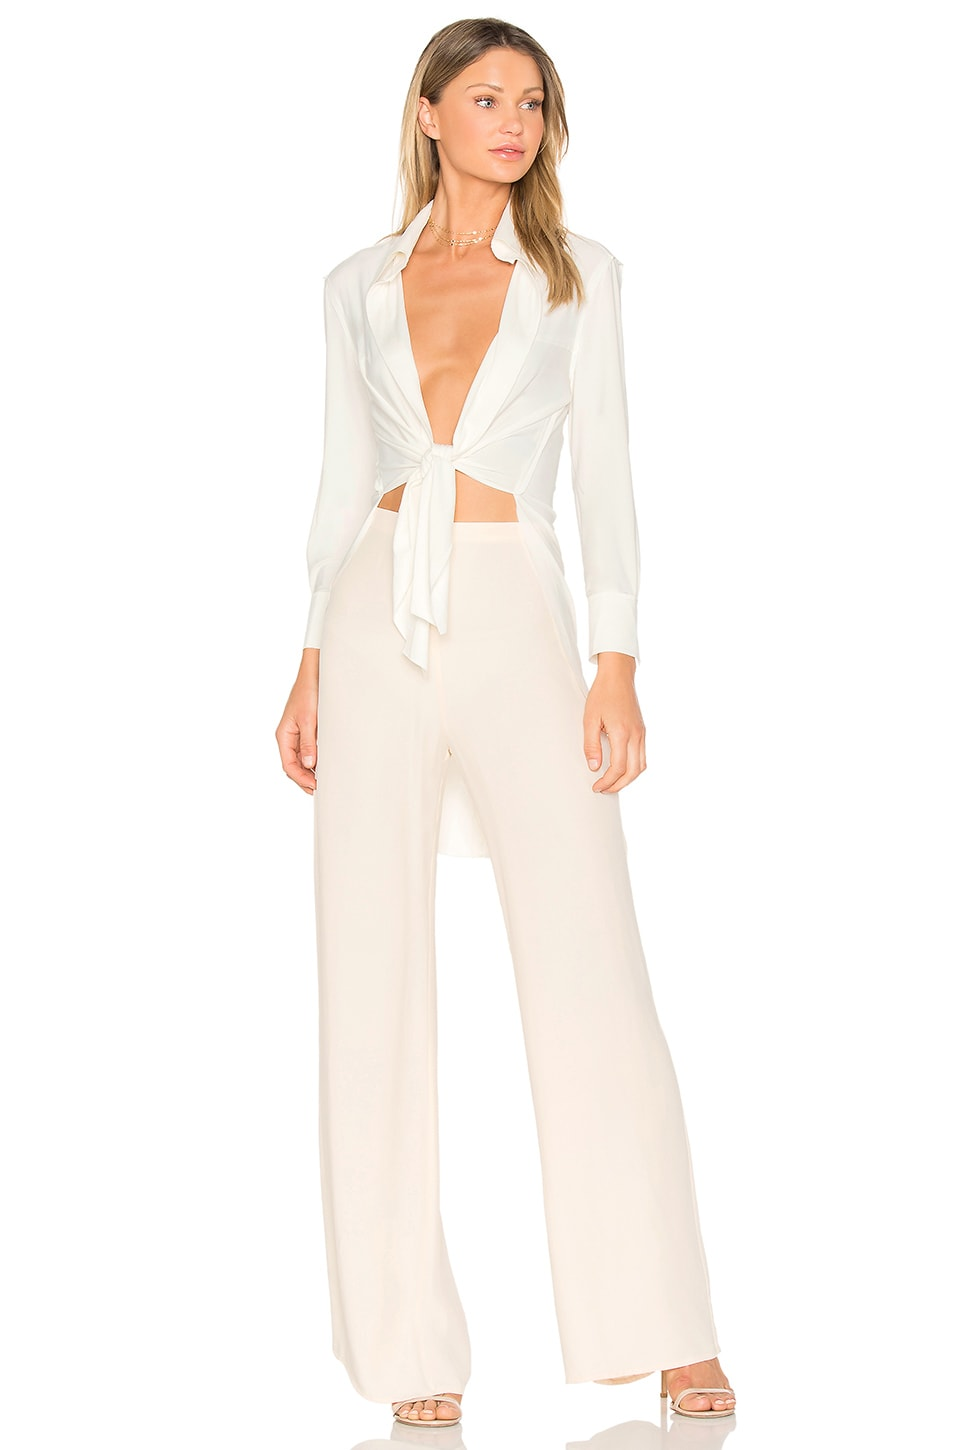 Norma Kamali Tie Front Shirt in Ivory